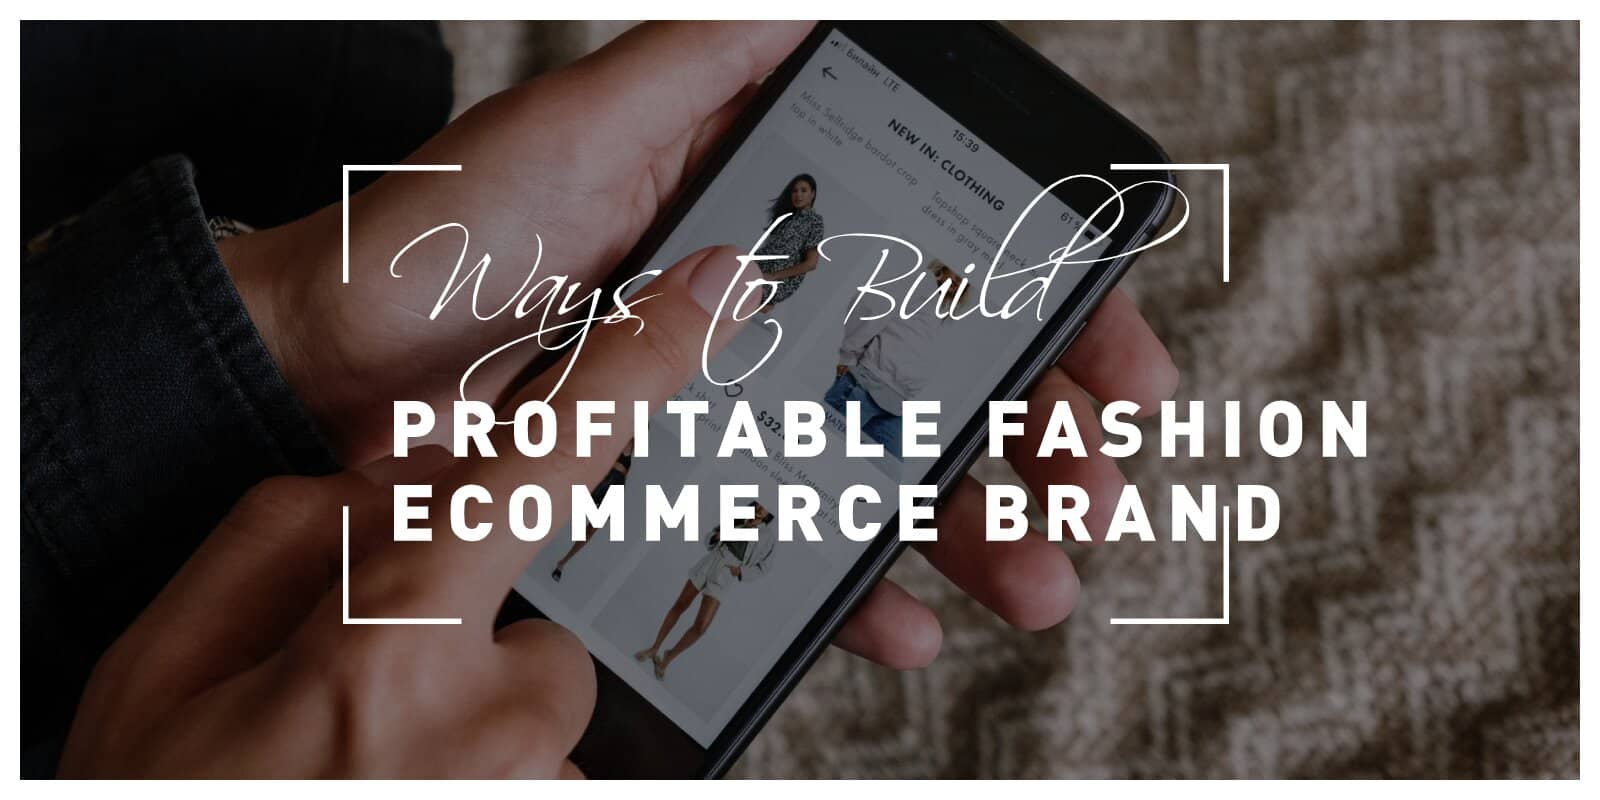 Five Ways to Build a Profitable Fashion Ecommerce Brand